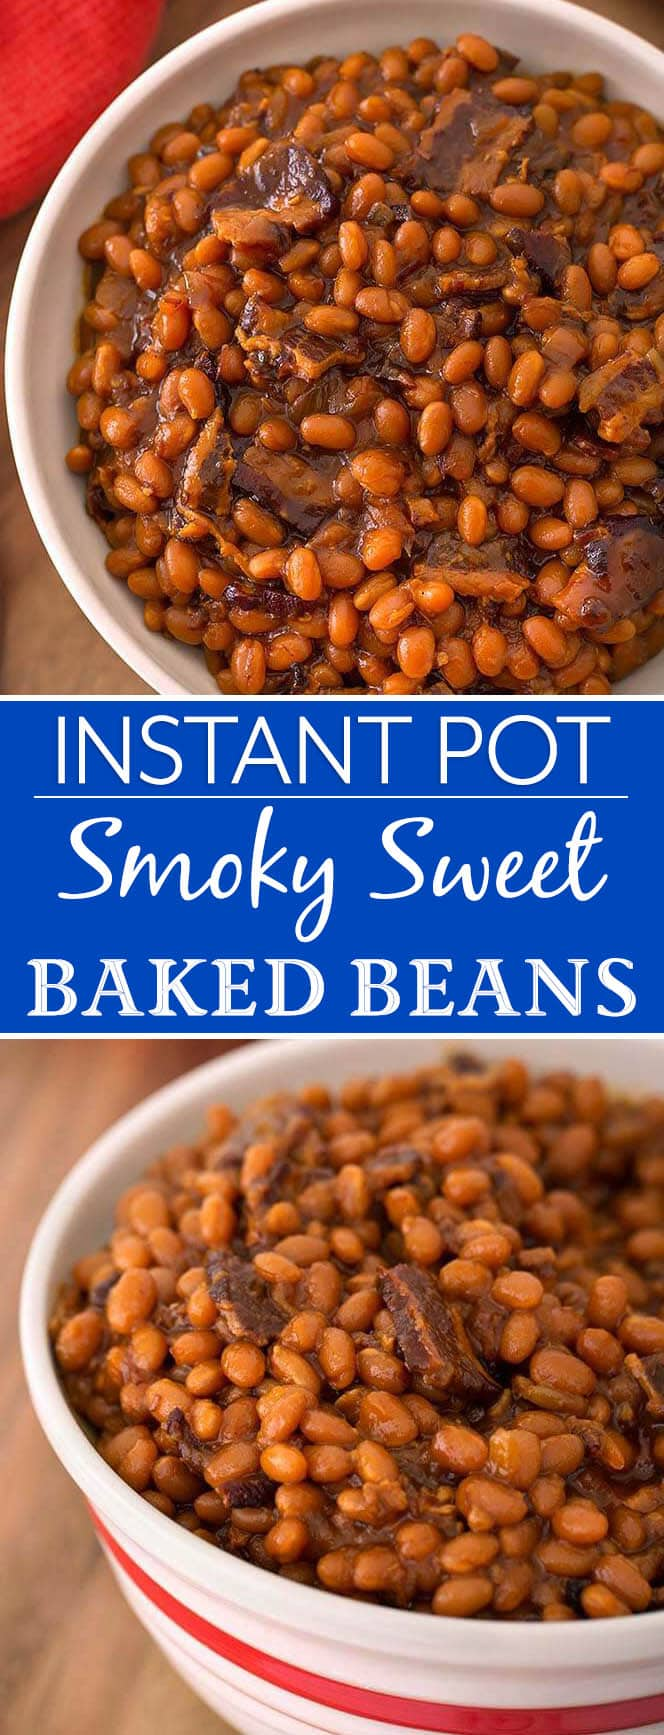 Instant Pot Smoky Sweet Baked Beans are rich and delicious. Made from soaked or dry beans in your electric pressure cooker. simplyhappyfoodie.com #instantpotrecipes #instantpotbakedbeans #instantpotbeans #instantpotbakedbeansrecipe #pressurecookerbakedbeans